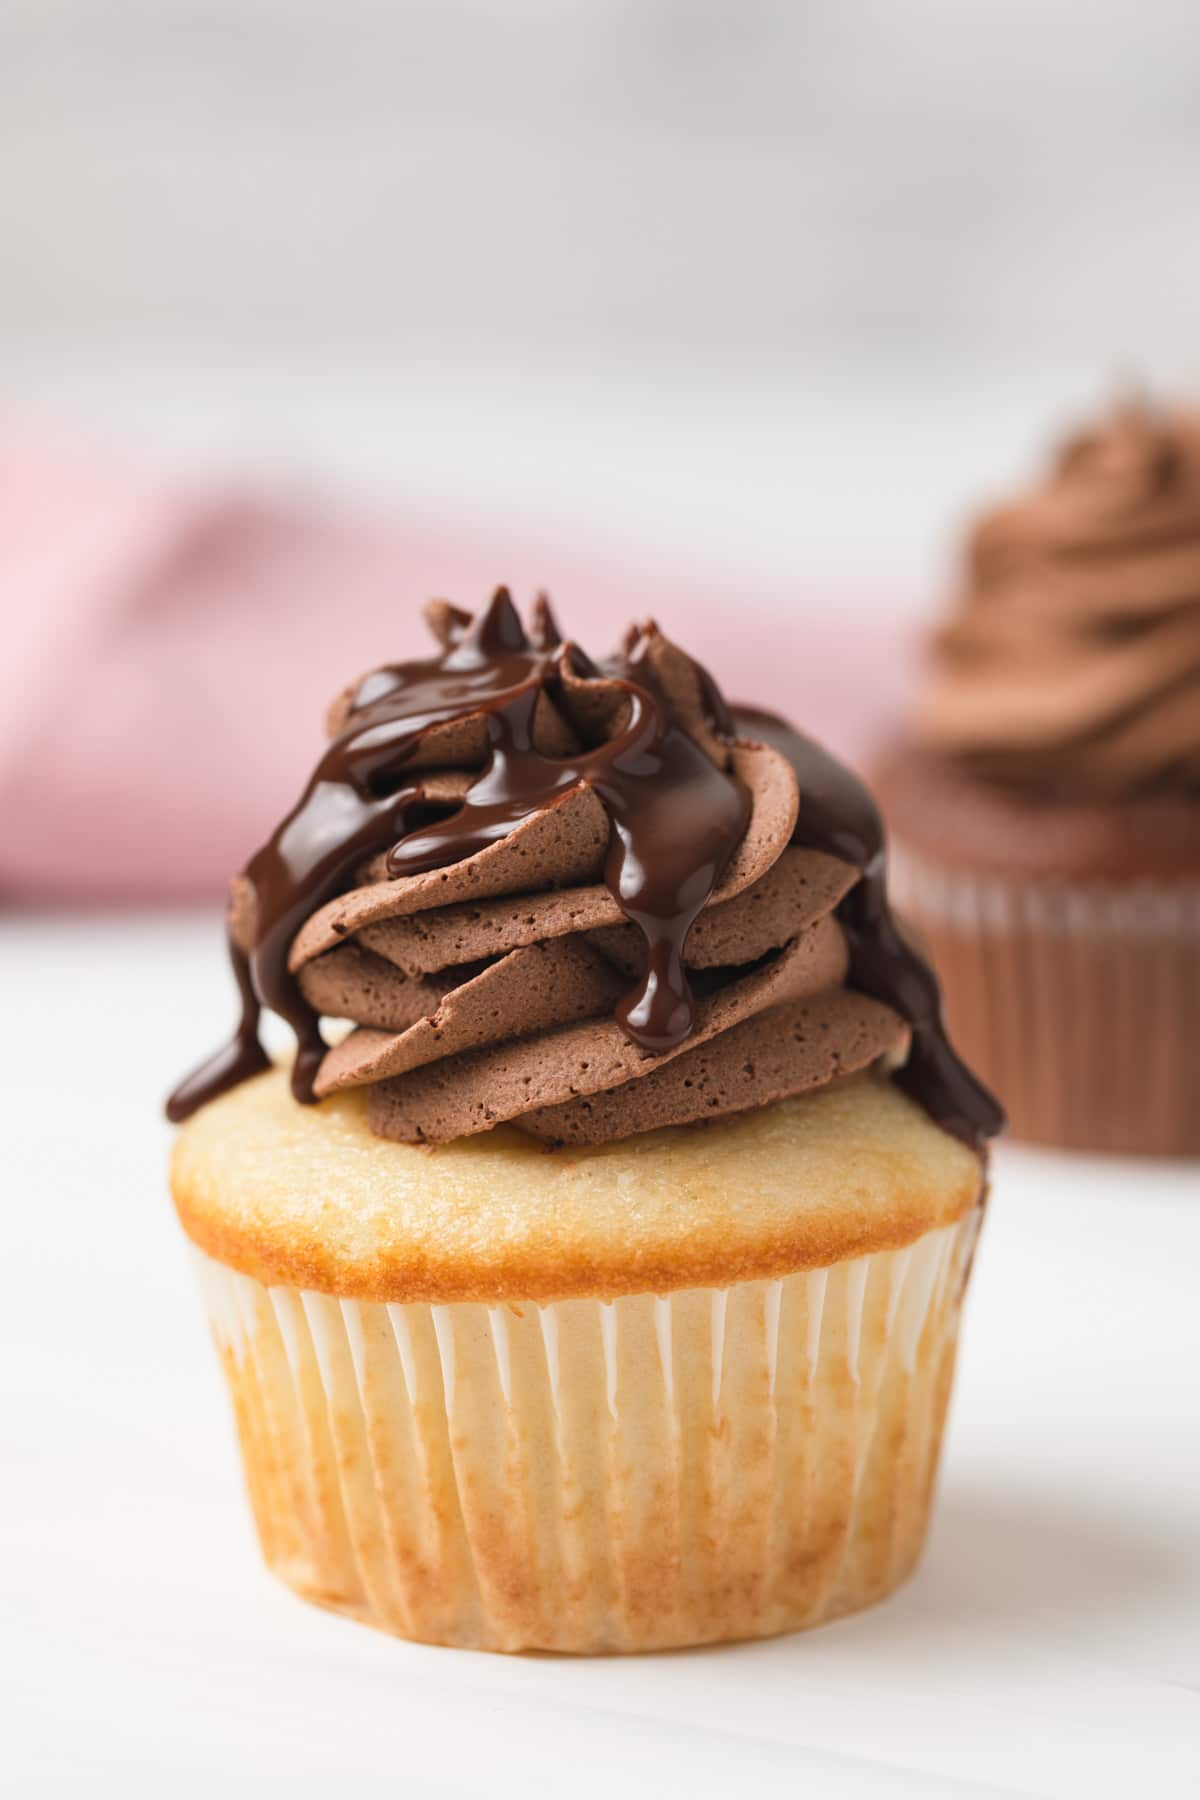 vanilla cupcake topped with chocolate ganache frosting and chocolate glaze